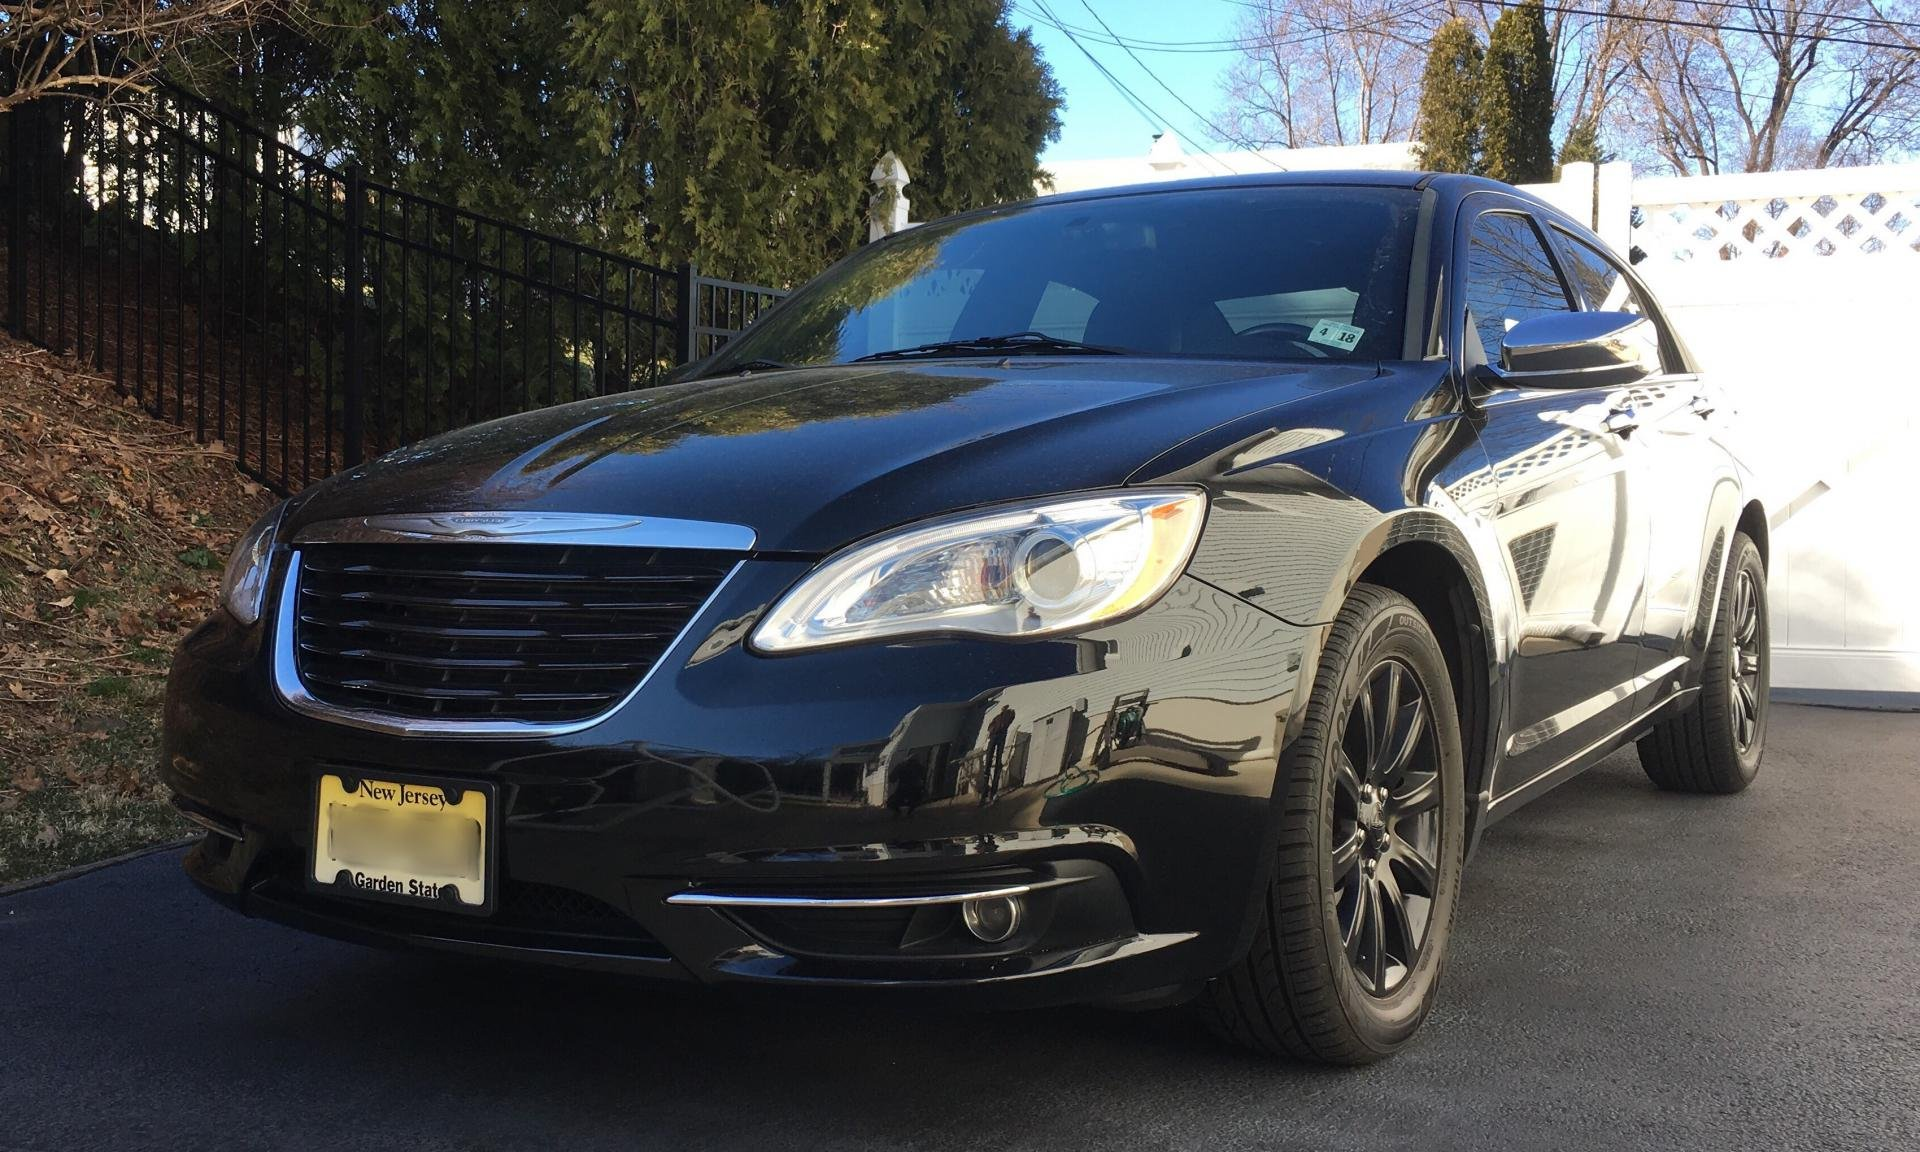 Chrysler 200 Mpg >> 2013 Chrysler 200 Limited - With Extended Warranty (New Jersey)